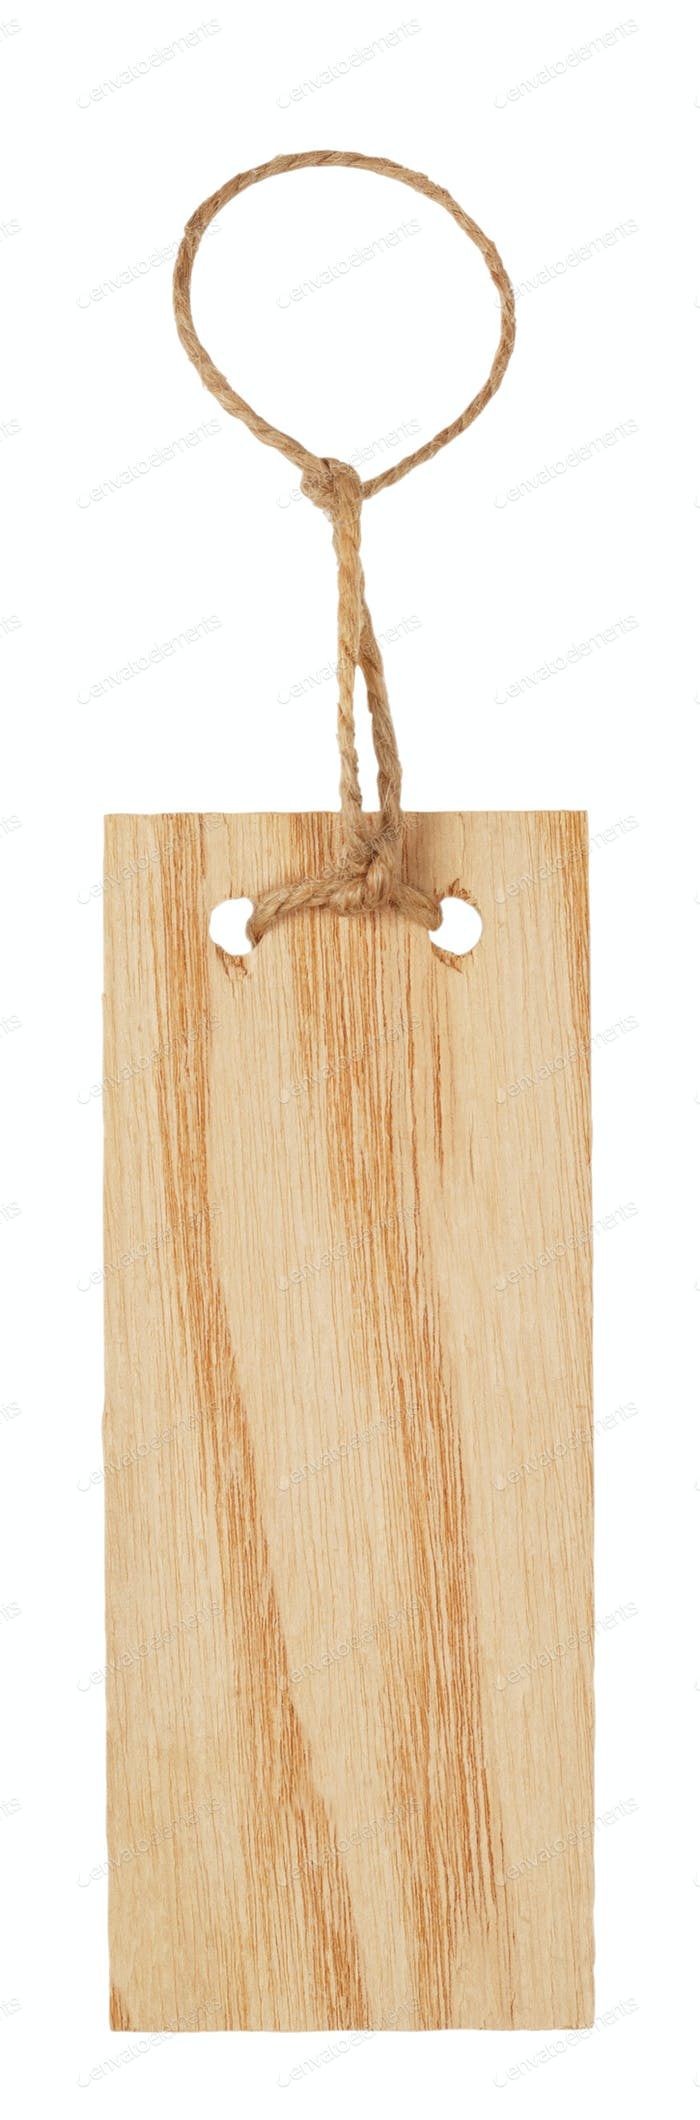 Wooden label with rope